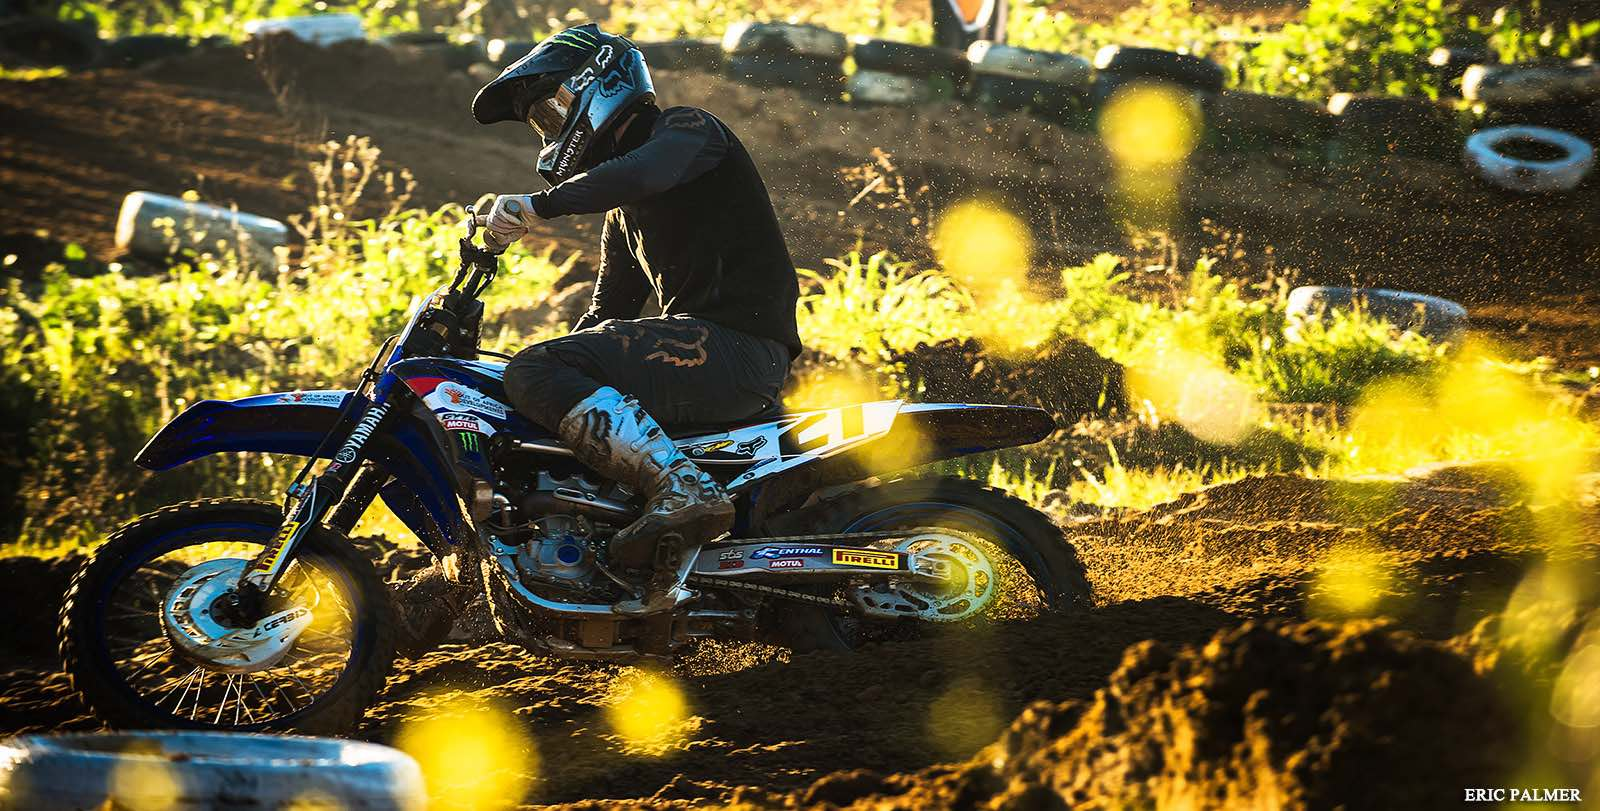 David Goosen racing his way to 2nd place at the Motocross Nationals id Cape Town